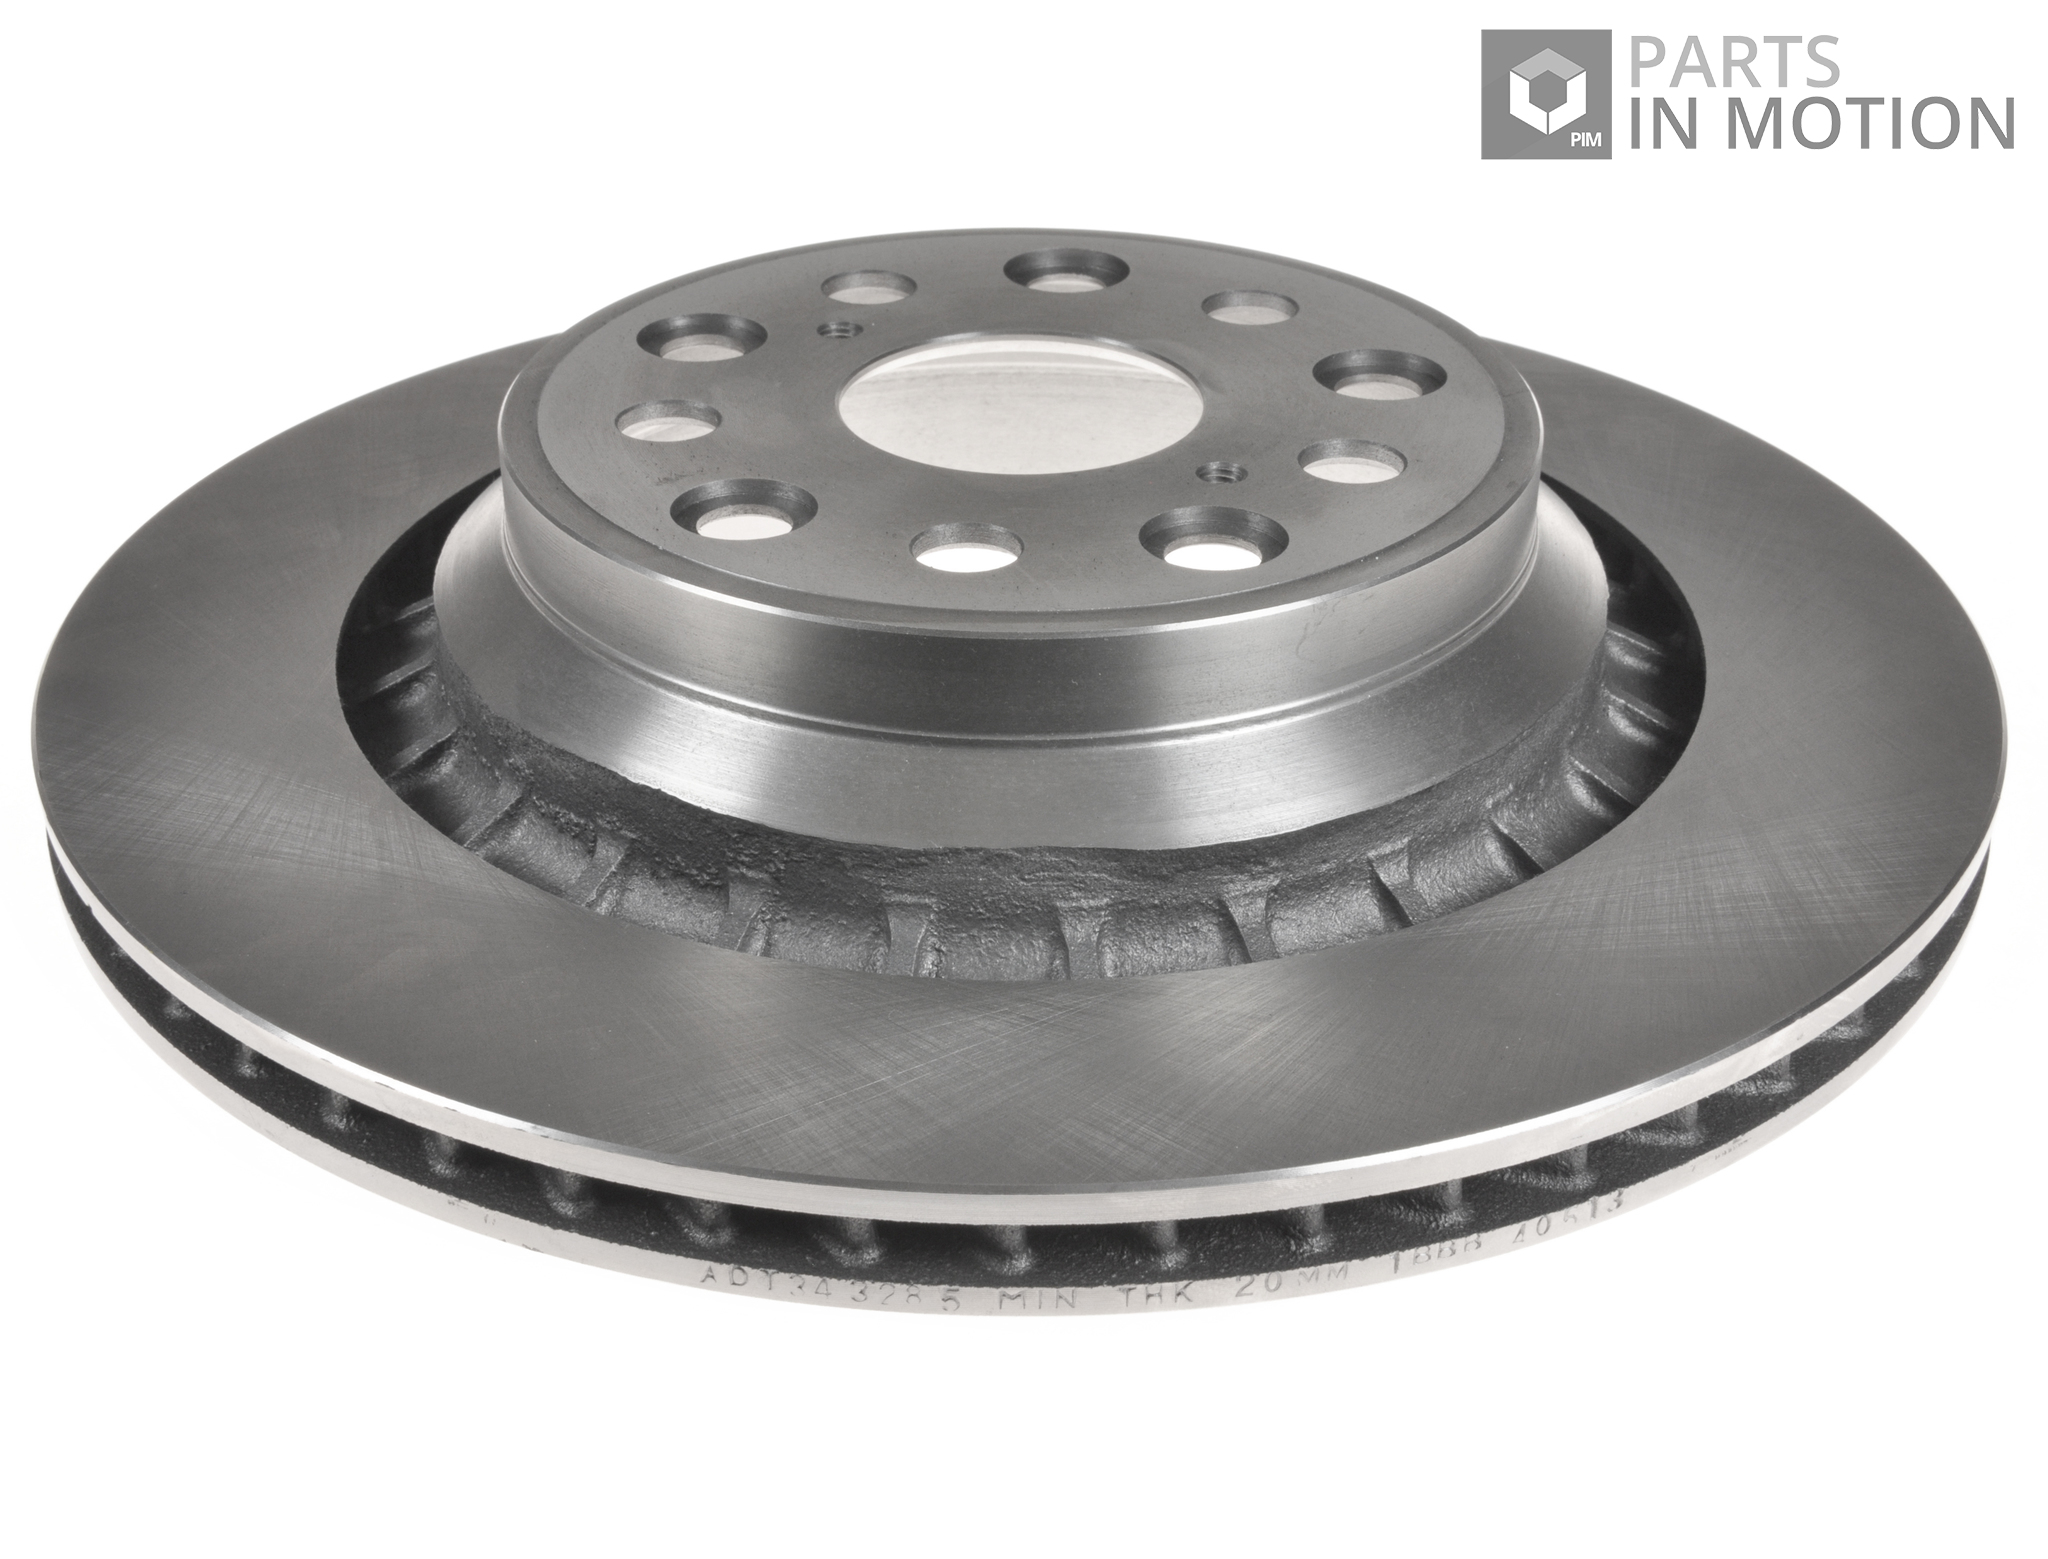 Details about Brake Disc (Single) Vented Rear Left 335mm ADT343285 Blue  Print 4243250010 New